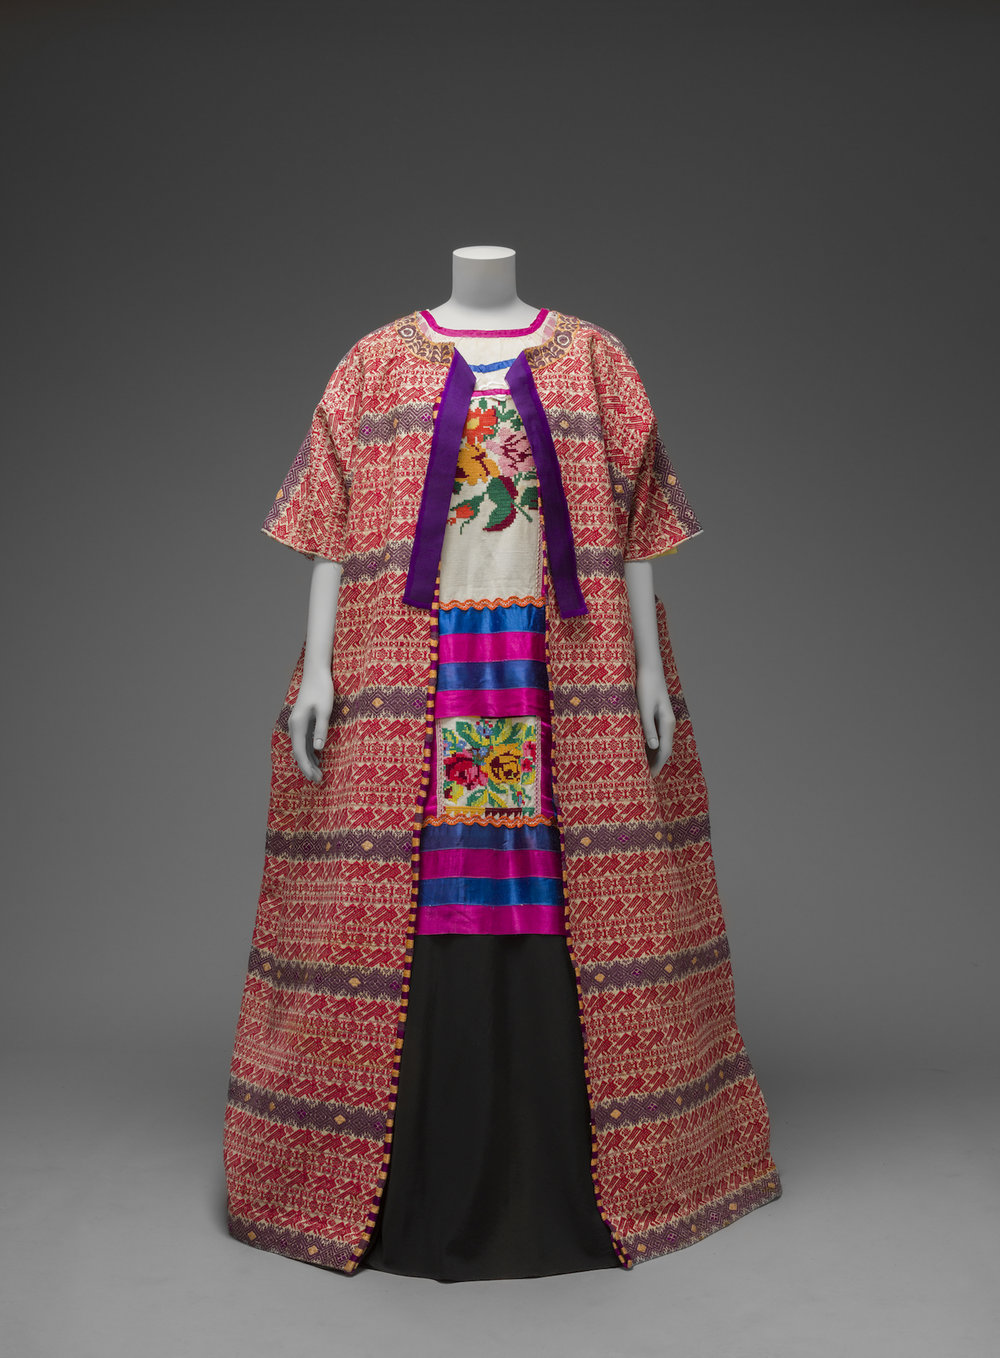 Guatemalan cotton coat worn with Mazatec huipil and plain floor-length skirt  Museo Frida Kahlo  © Diego Rivera and Frida Kahlo Archives, Banco de México, Fiduciary of the Trust of the Diego Riviera and Frida Kahlo Museums.